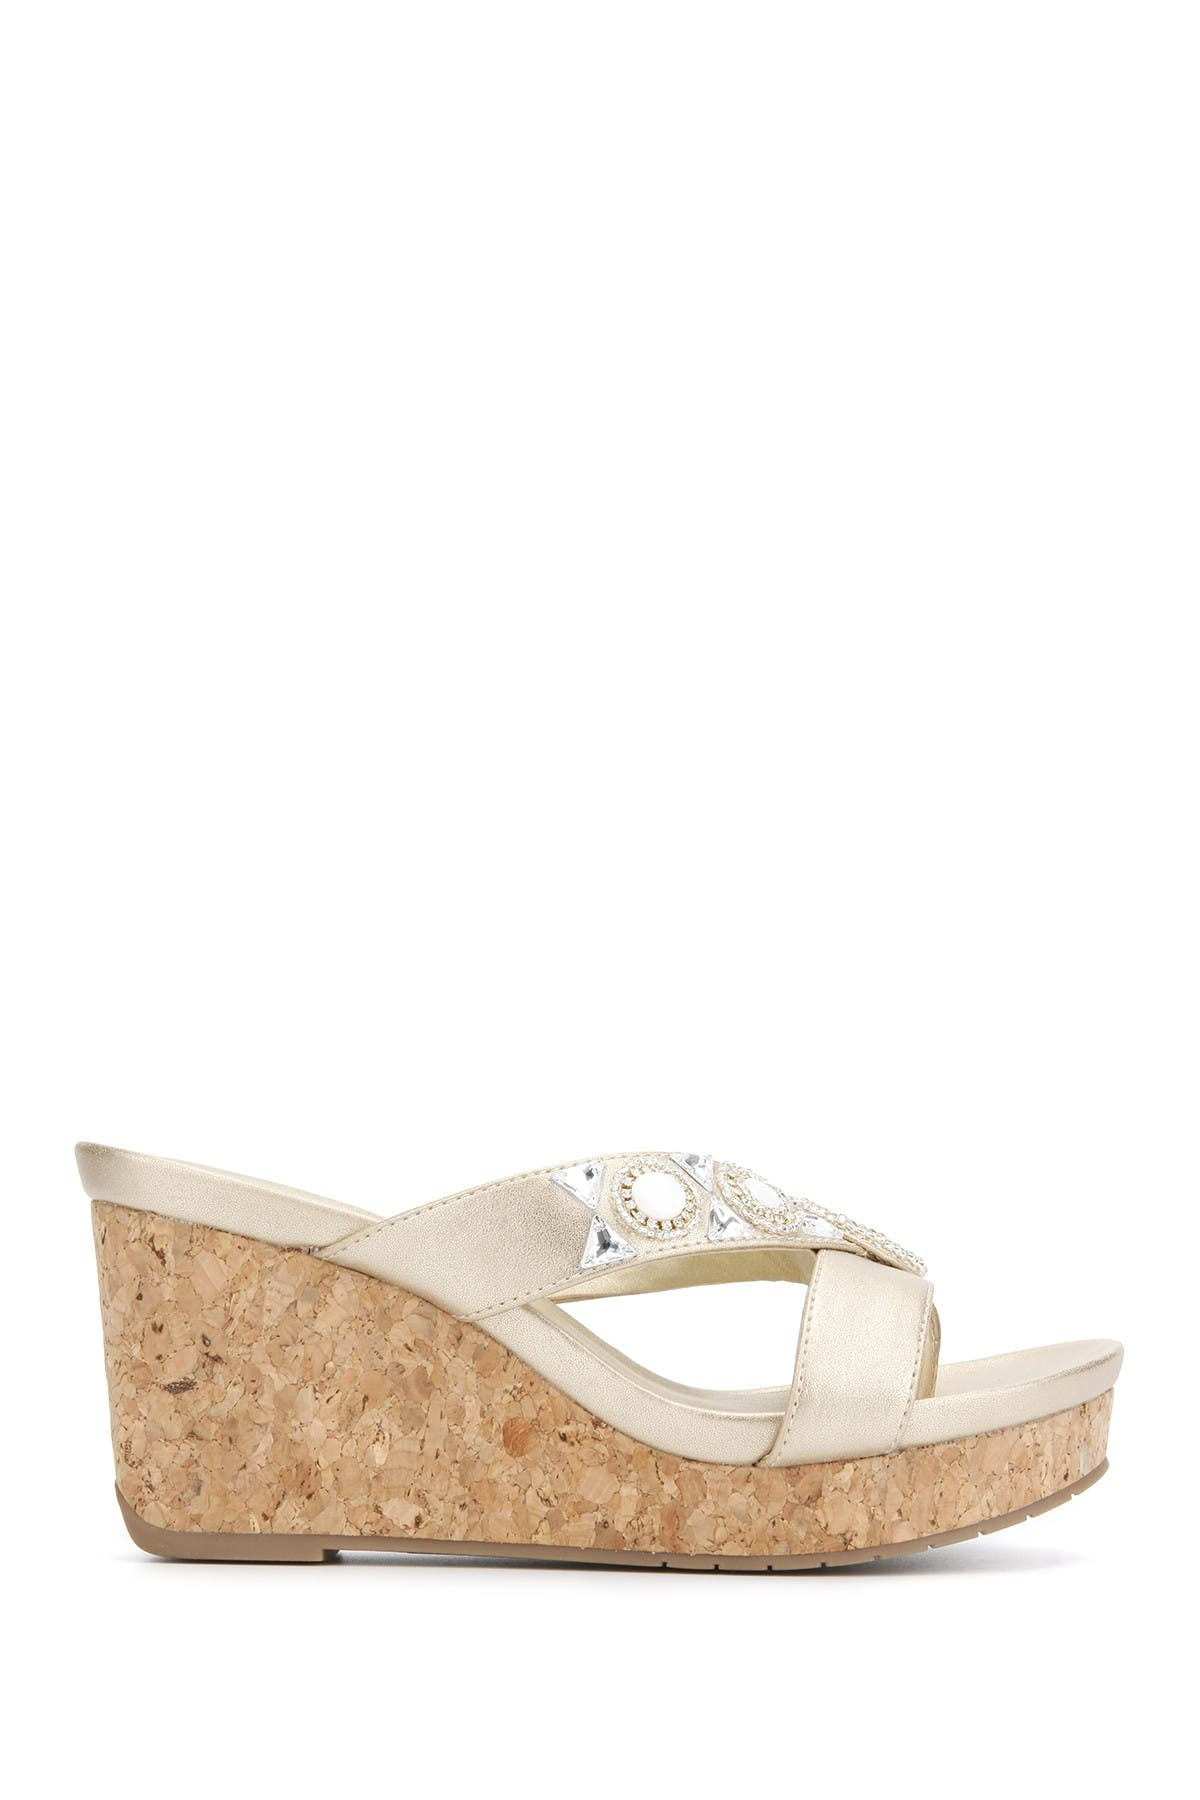 Kenneth Cole Card Glam Thong Toe Esparille In Champagne